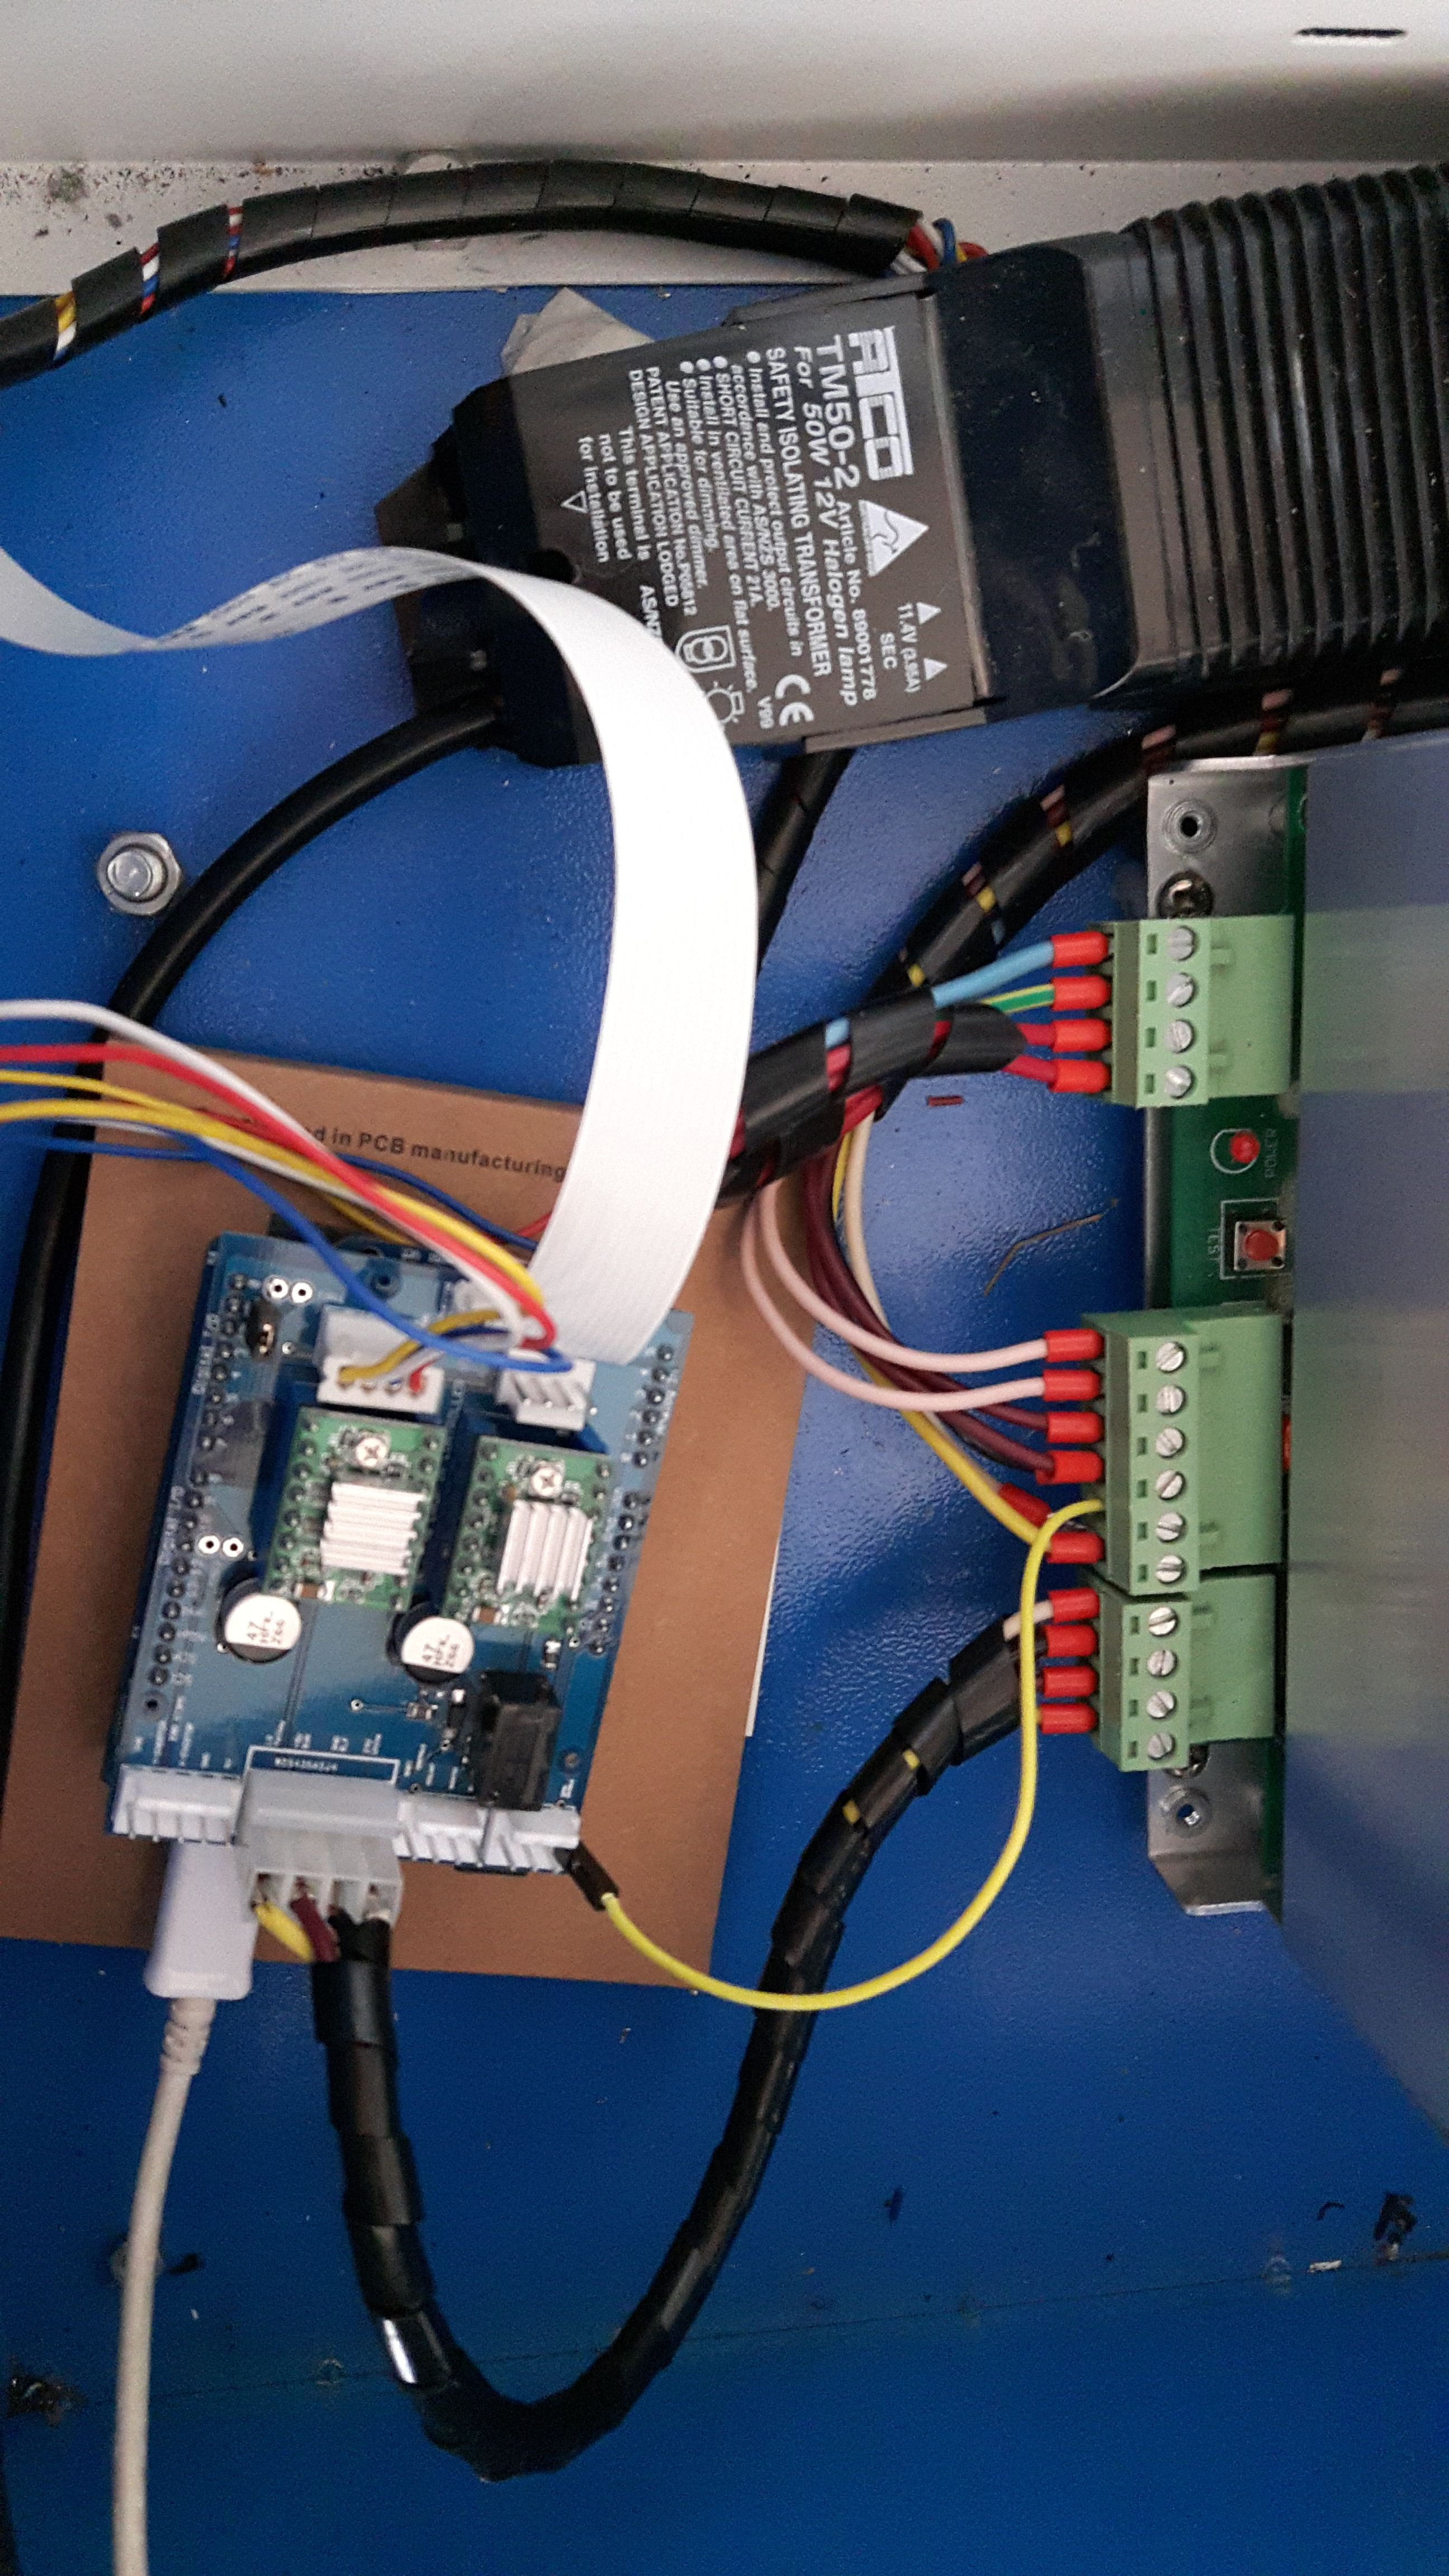 wiring the k40 and Gerbil   cnc in 2019   Cnc controller